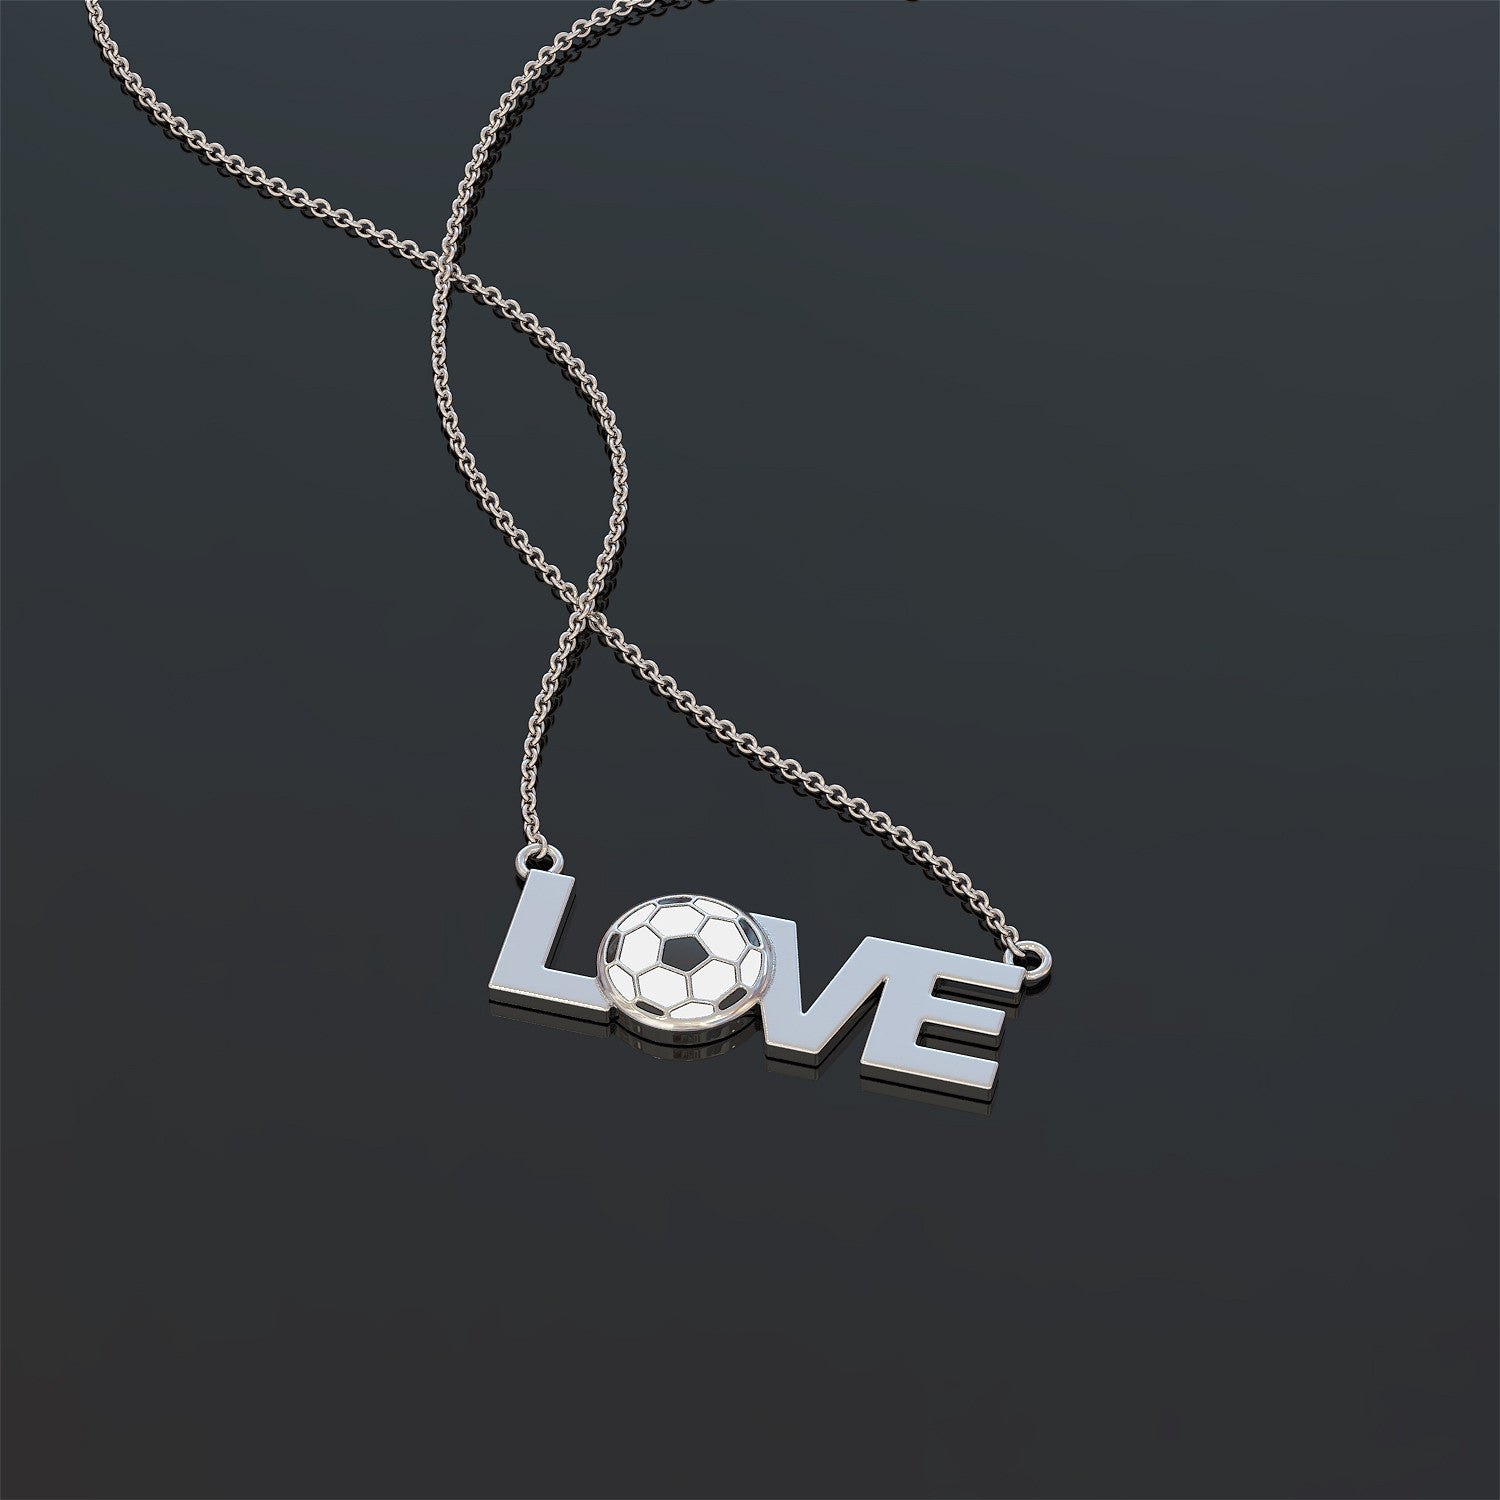 Love Soccer Necklace